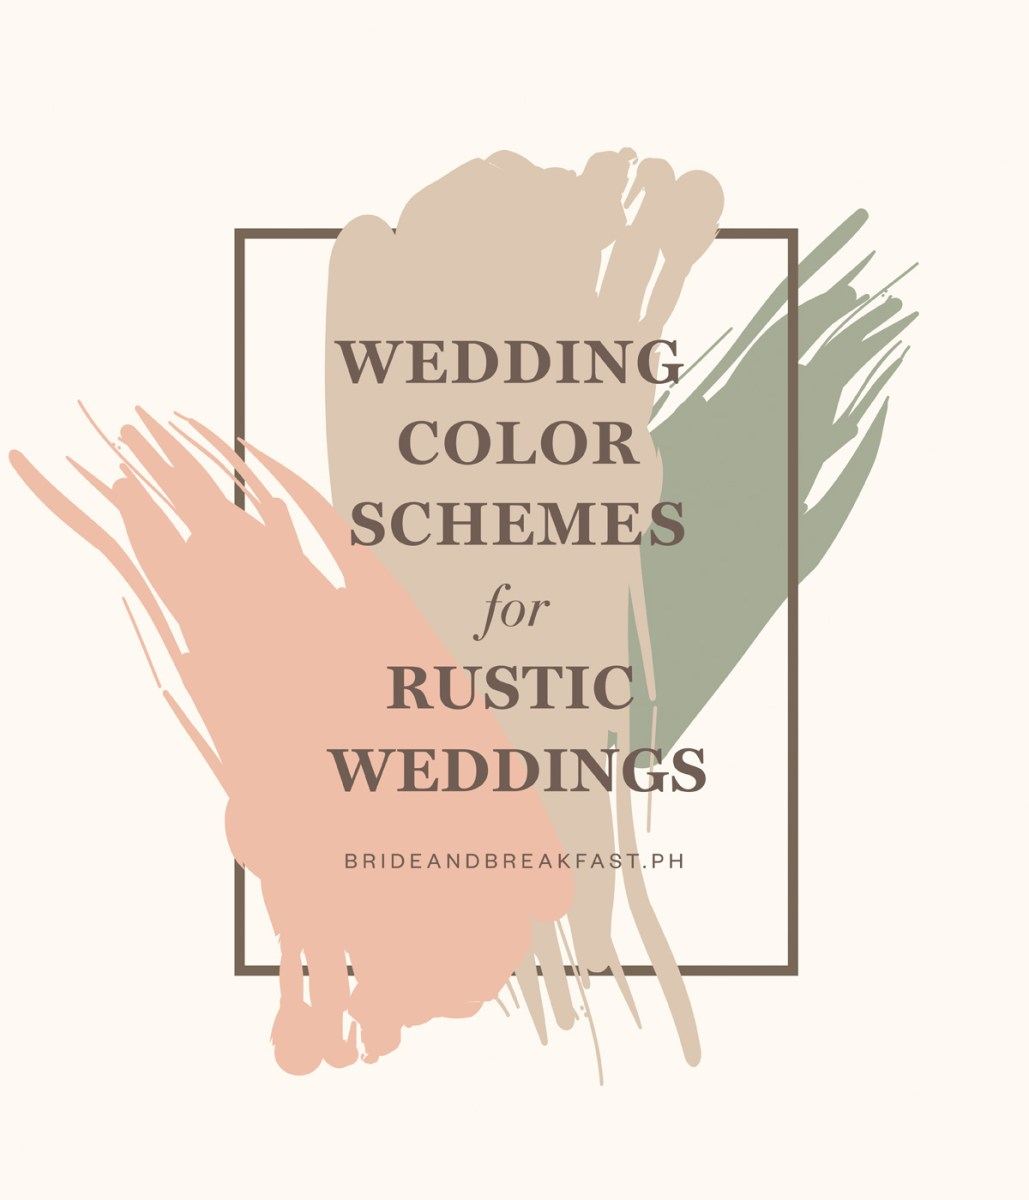 Rustic Wedding Colors Rustic Wedding Color Palettes Philippines Wedding Blog